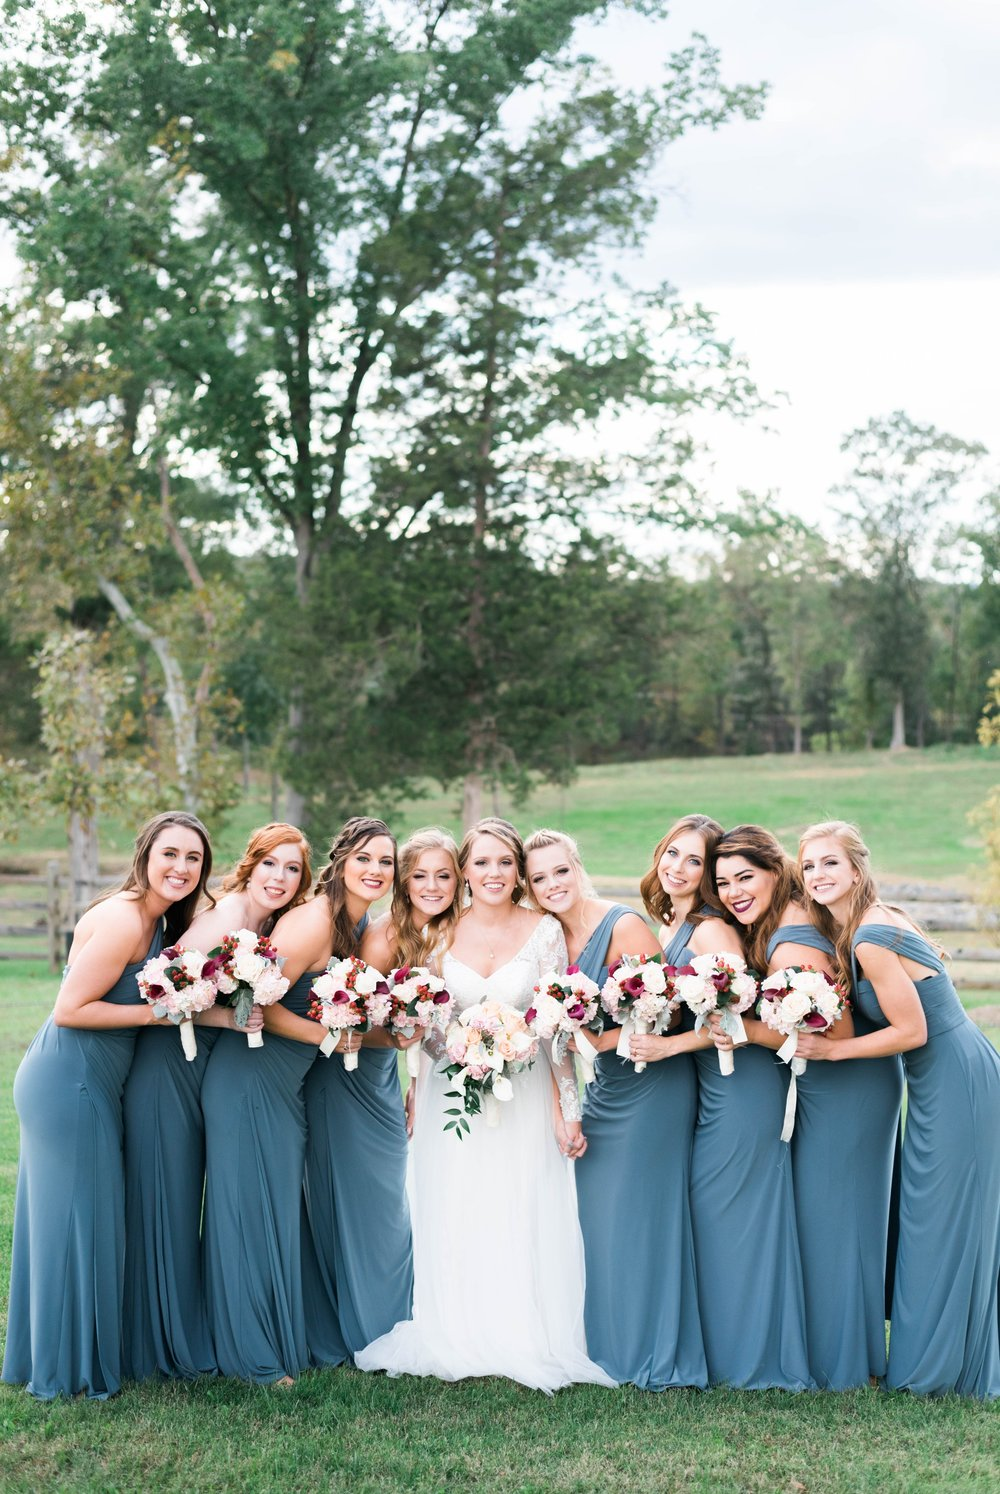 GrantElizabeth_wineryatbullrun_DCwedding_Virginiaweddingphotographer 7.jpg